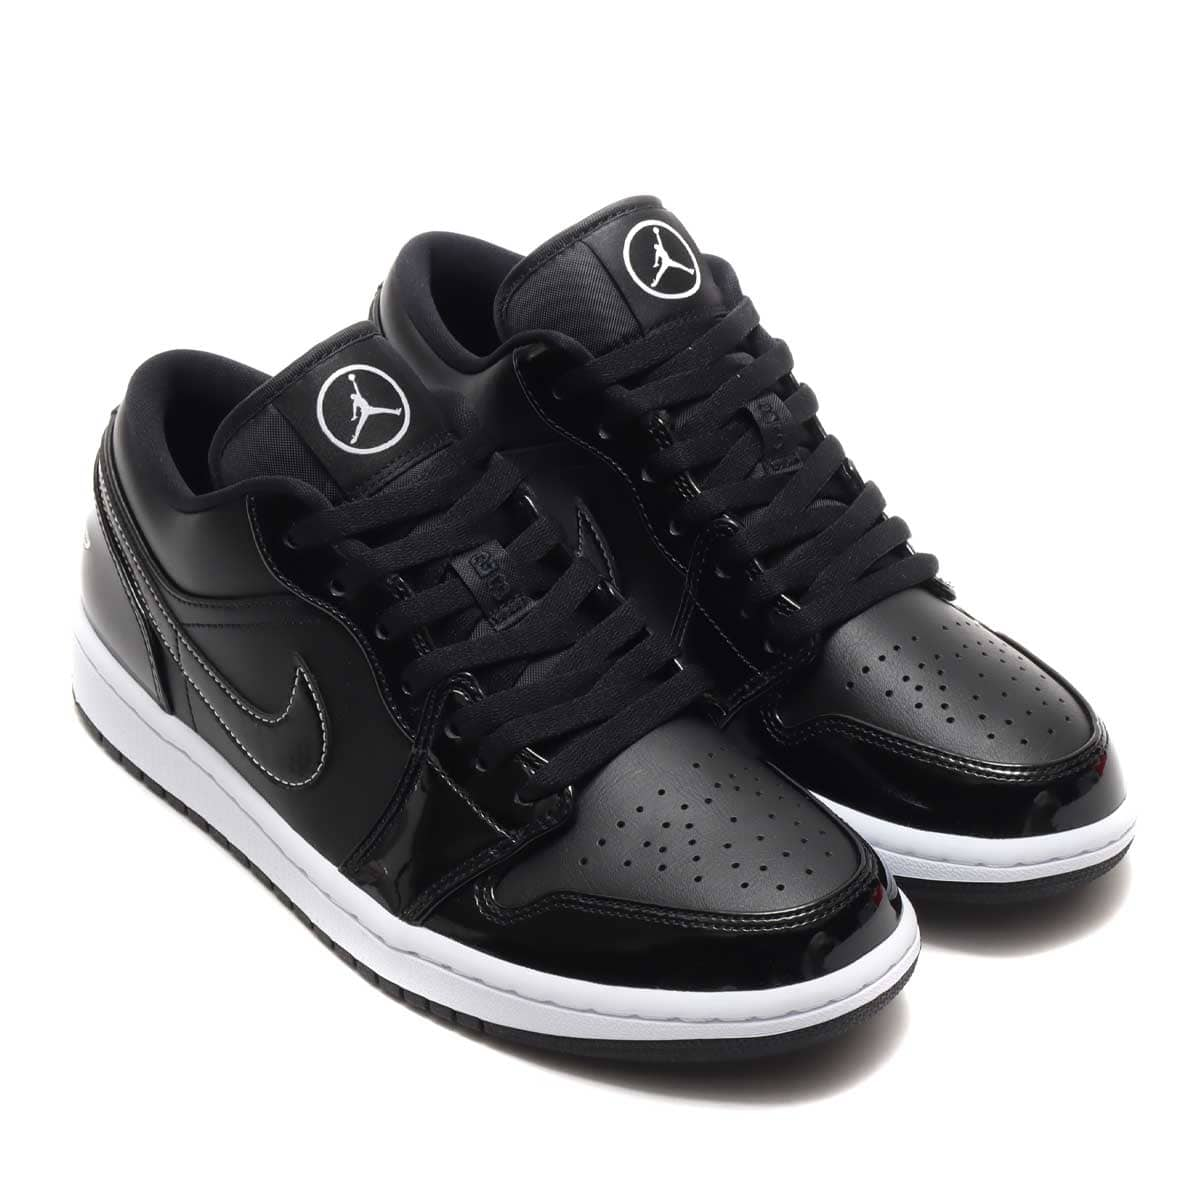 JORDAN BRAND AIR JORDAN 1 LOW SE ASW BLACK/WHITE 21SP-I_photo_large